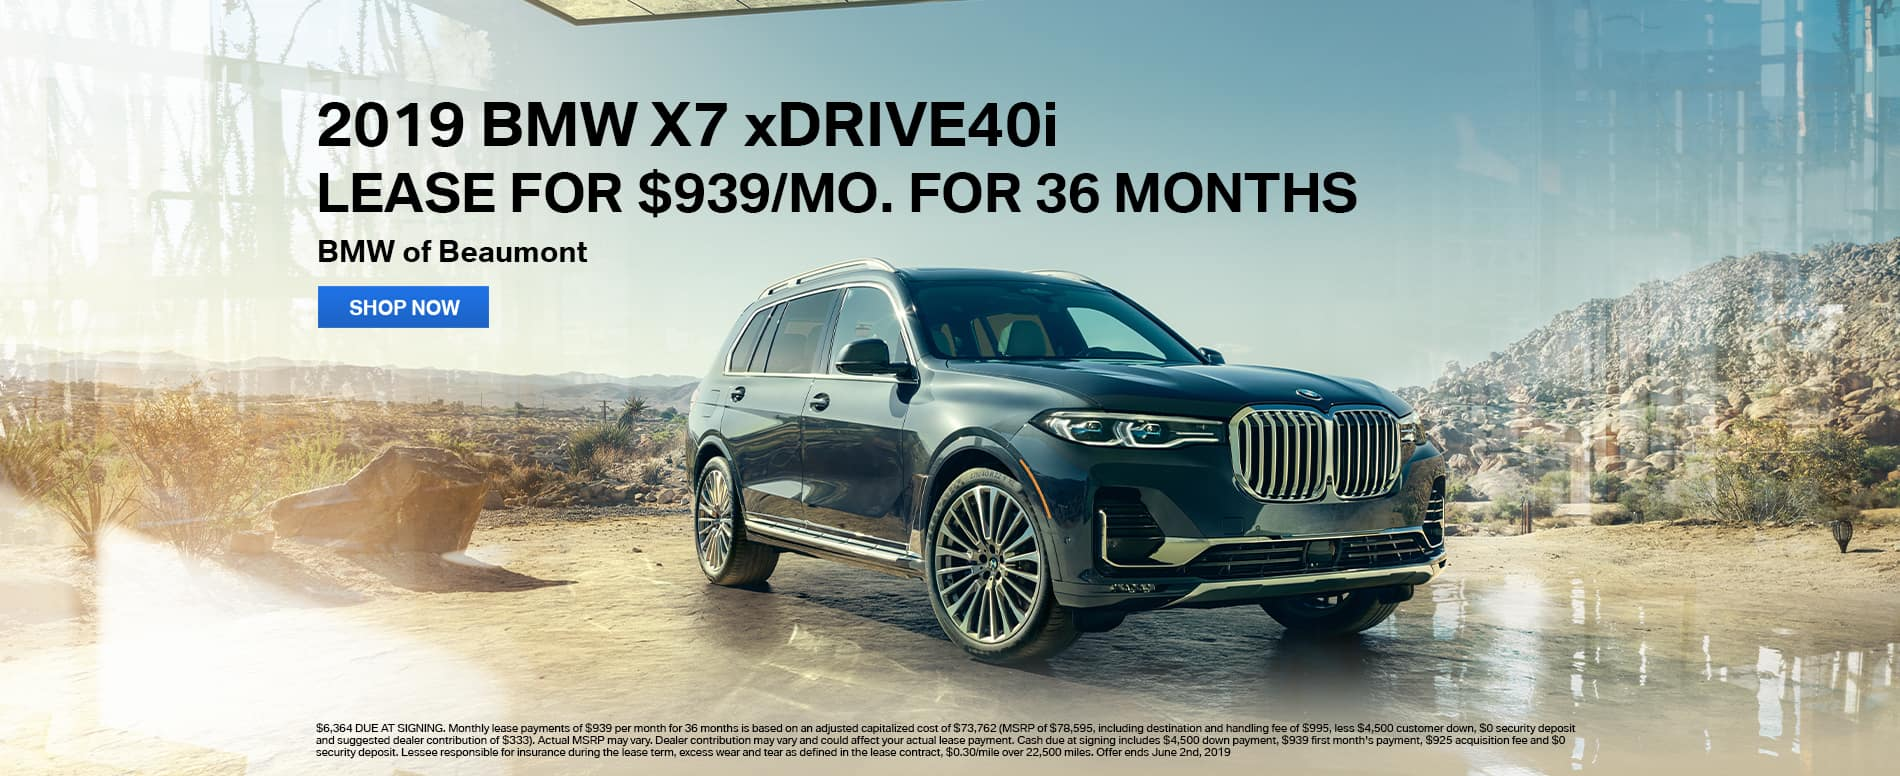 lease-2019-bmw-x7-xdrive40i-for-939-per-month-beaumont